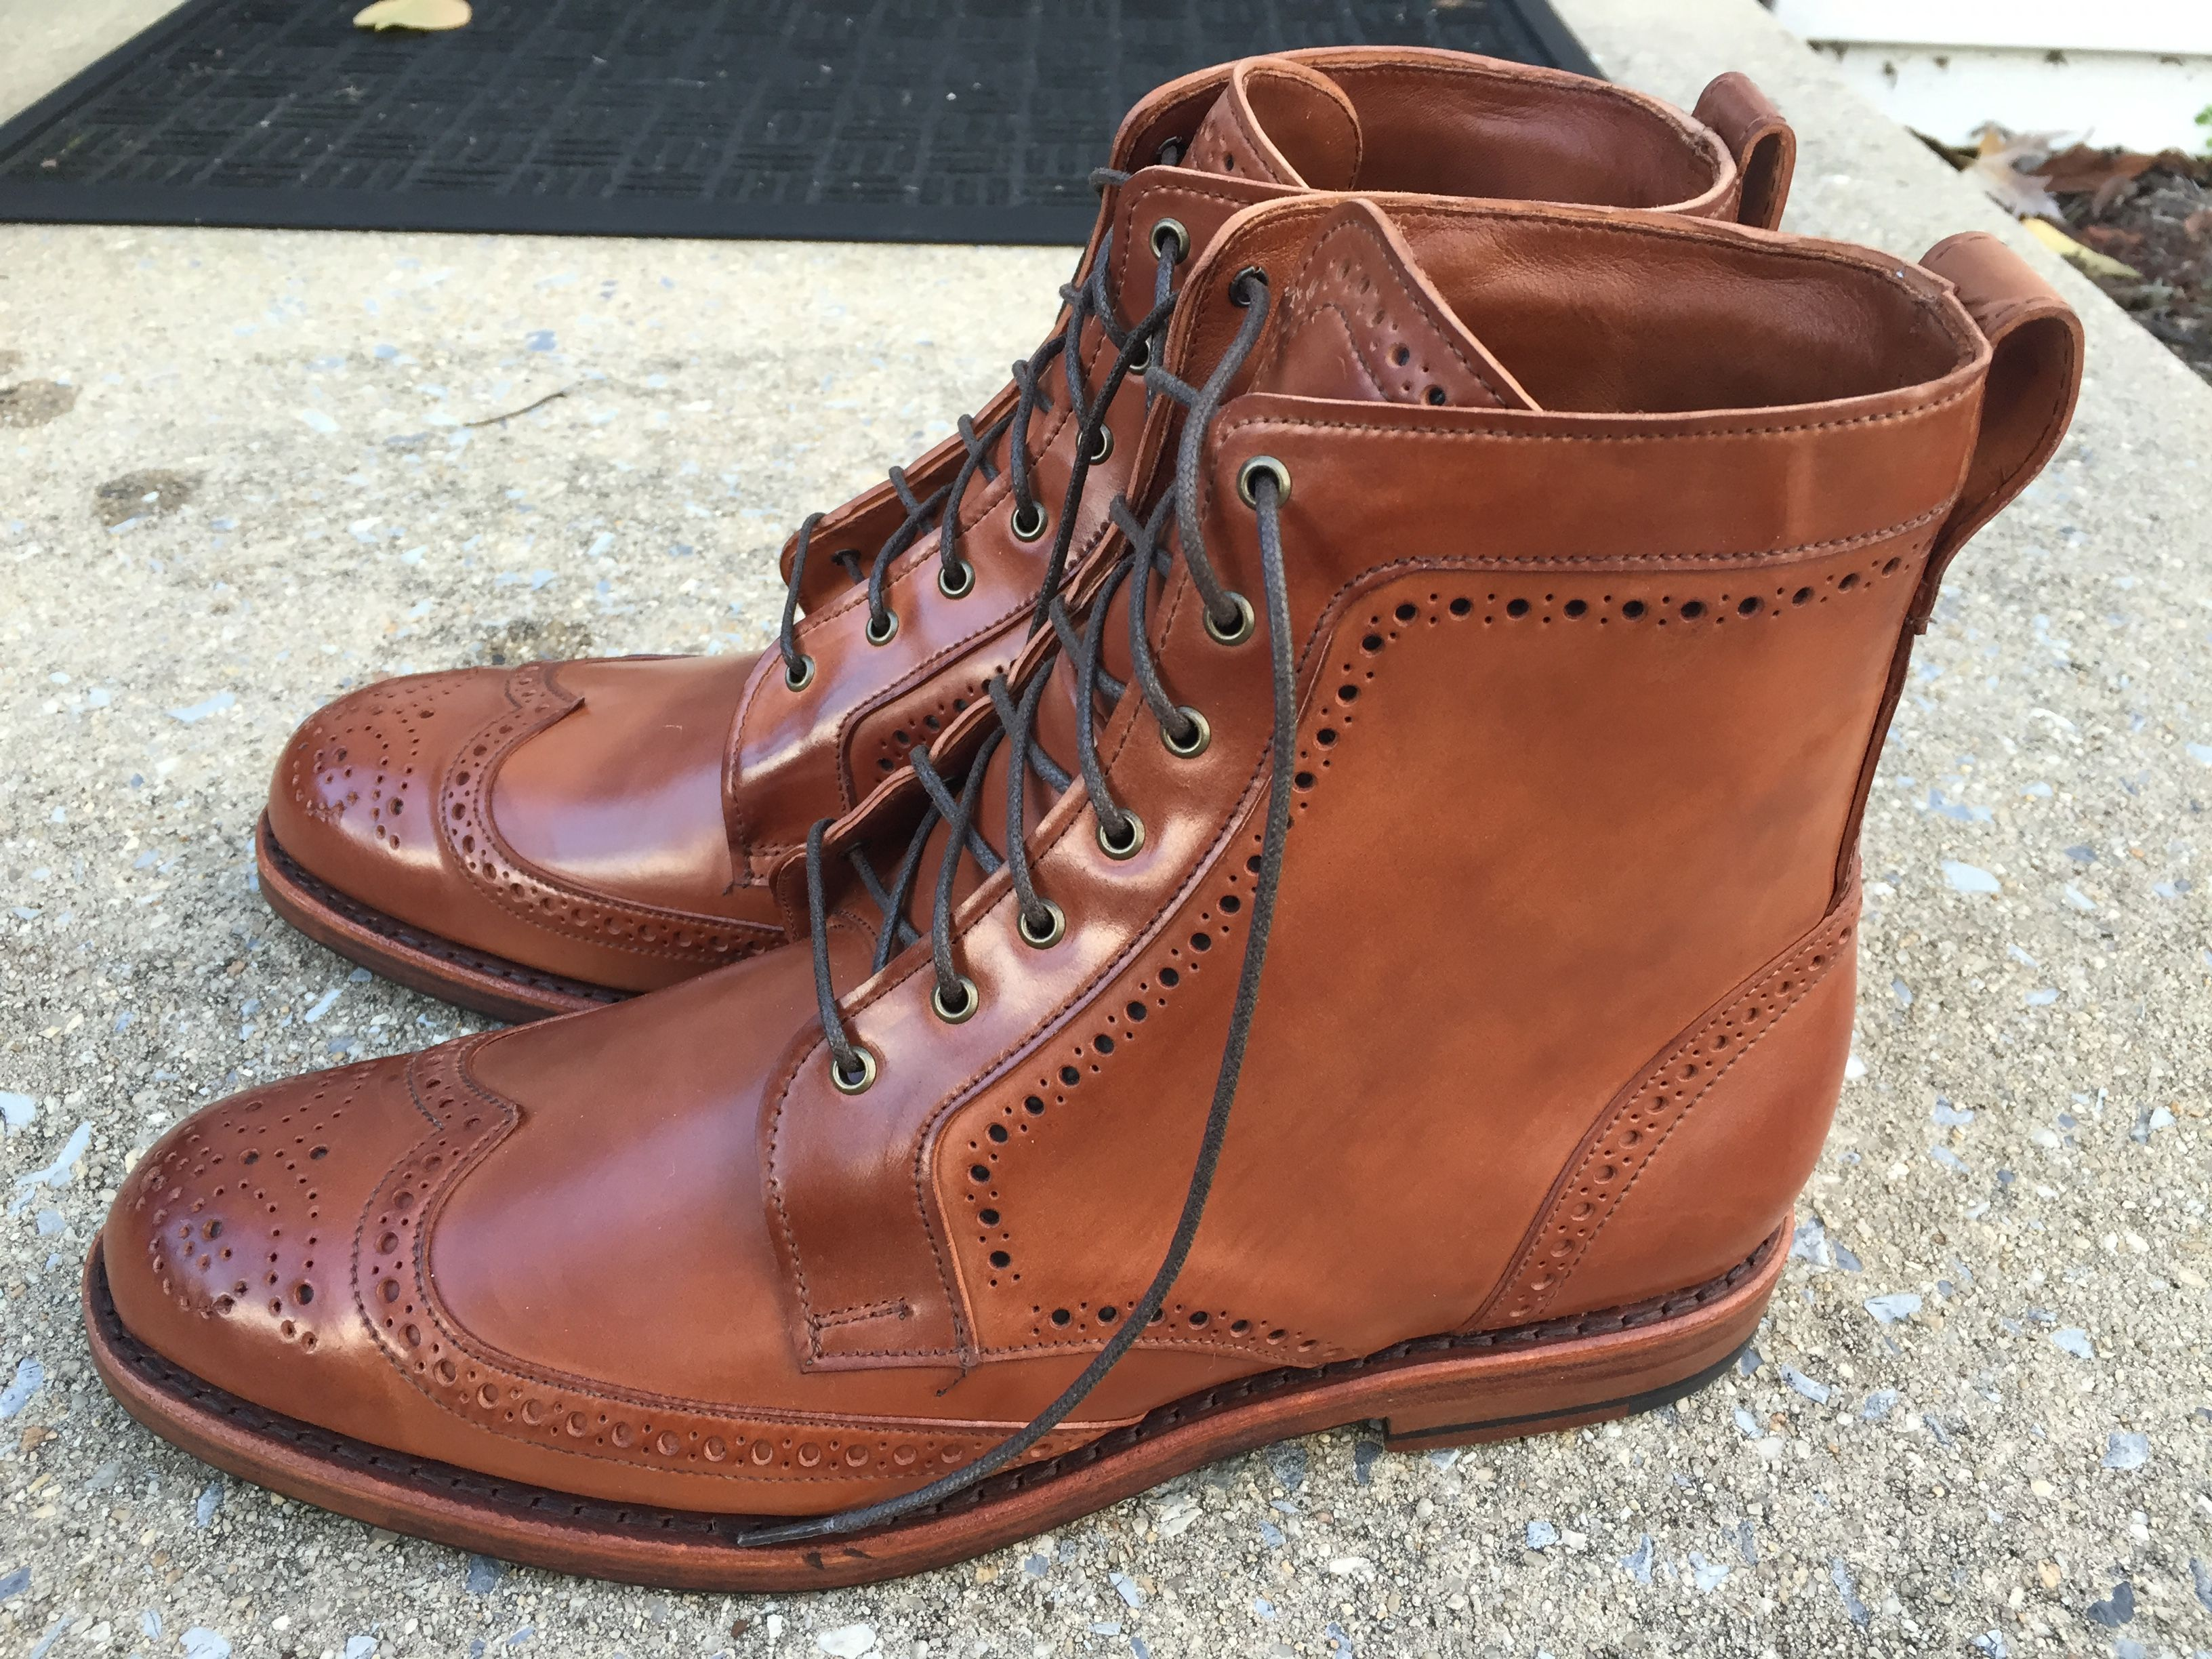 BackInTheJox's photos in The Shell Cordovan, non-Alden Shoe and Boot Thread